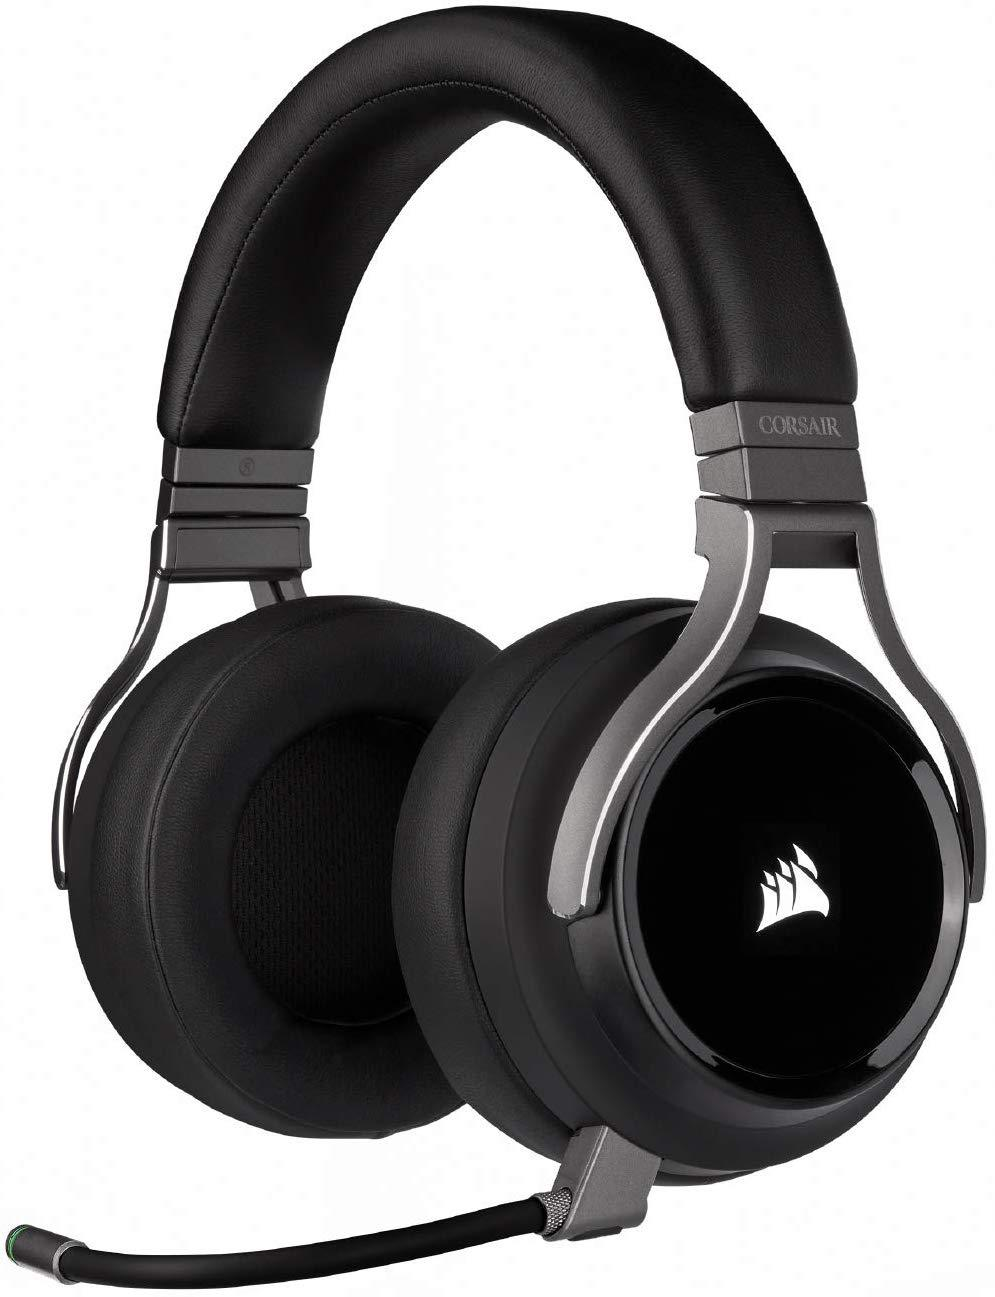 Corsair Virtuoso RGB Wireless Gaming Headset - Carbon